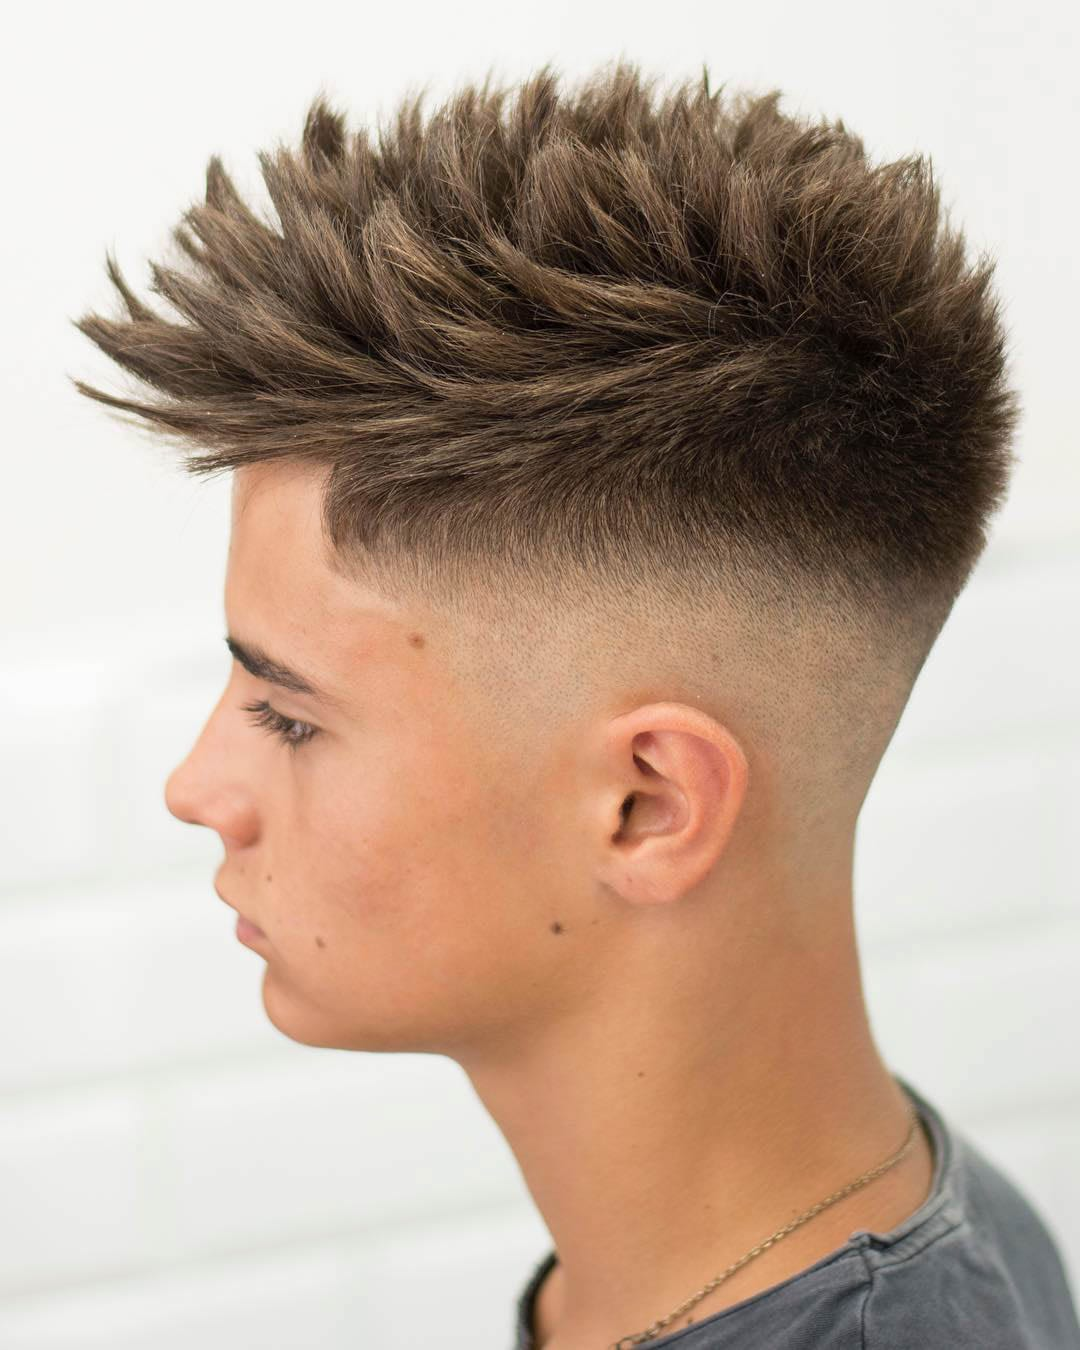 Spiky Fohawk with Fade